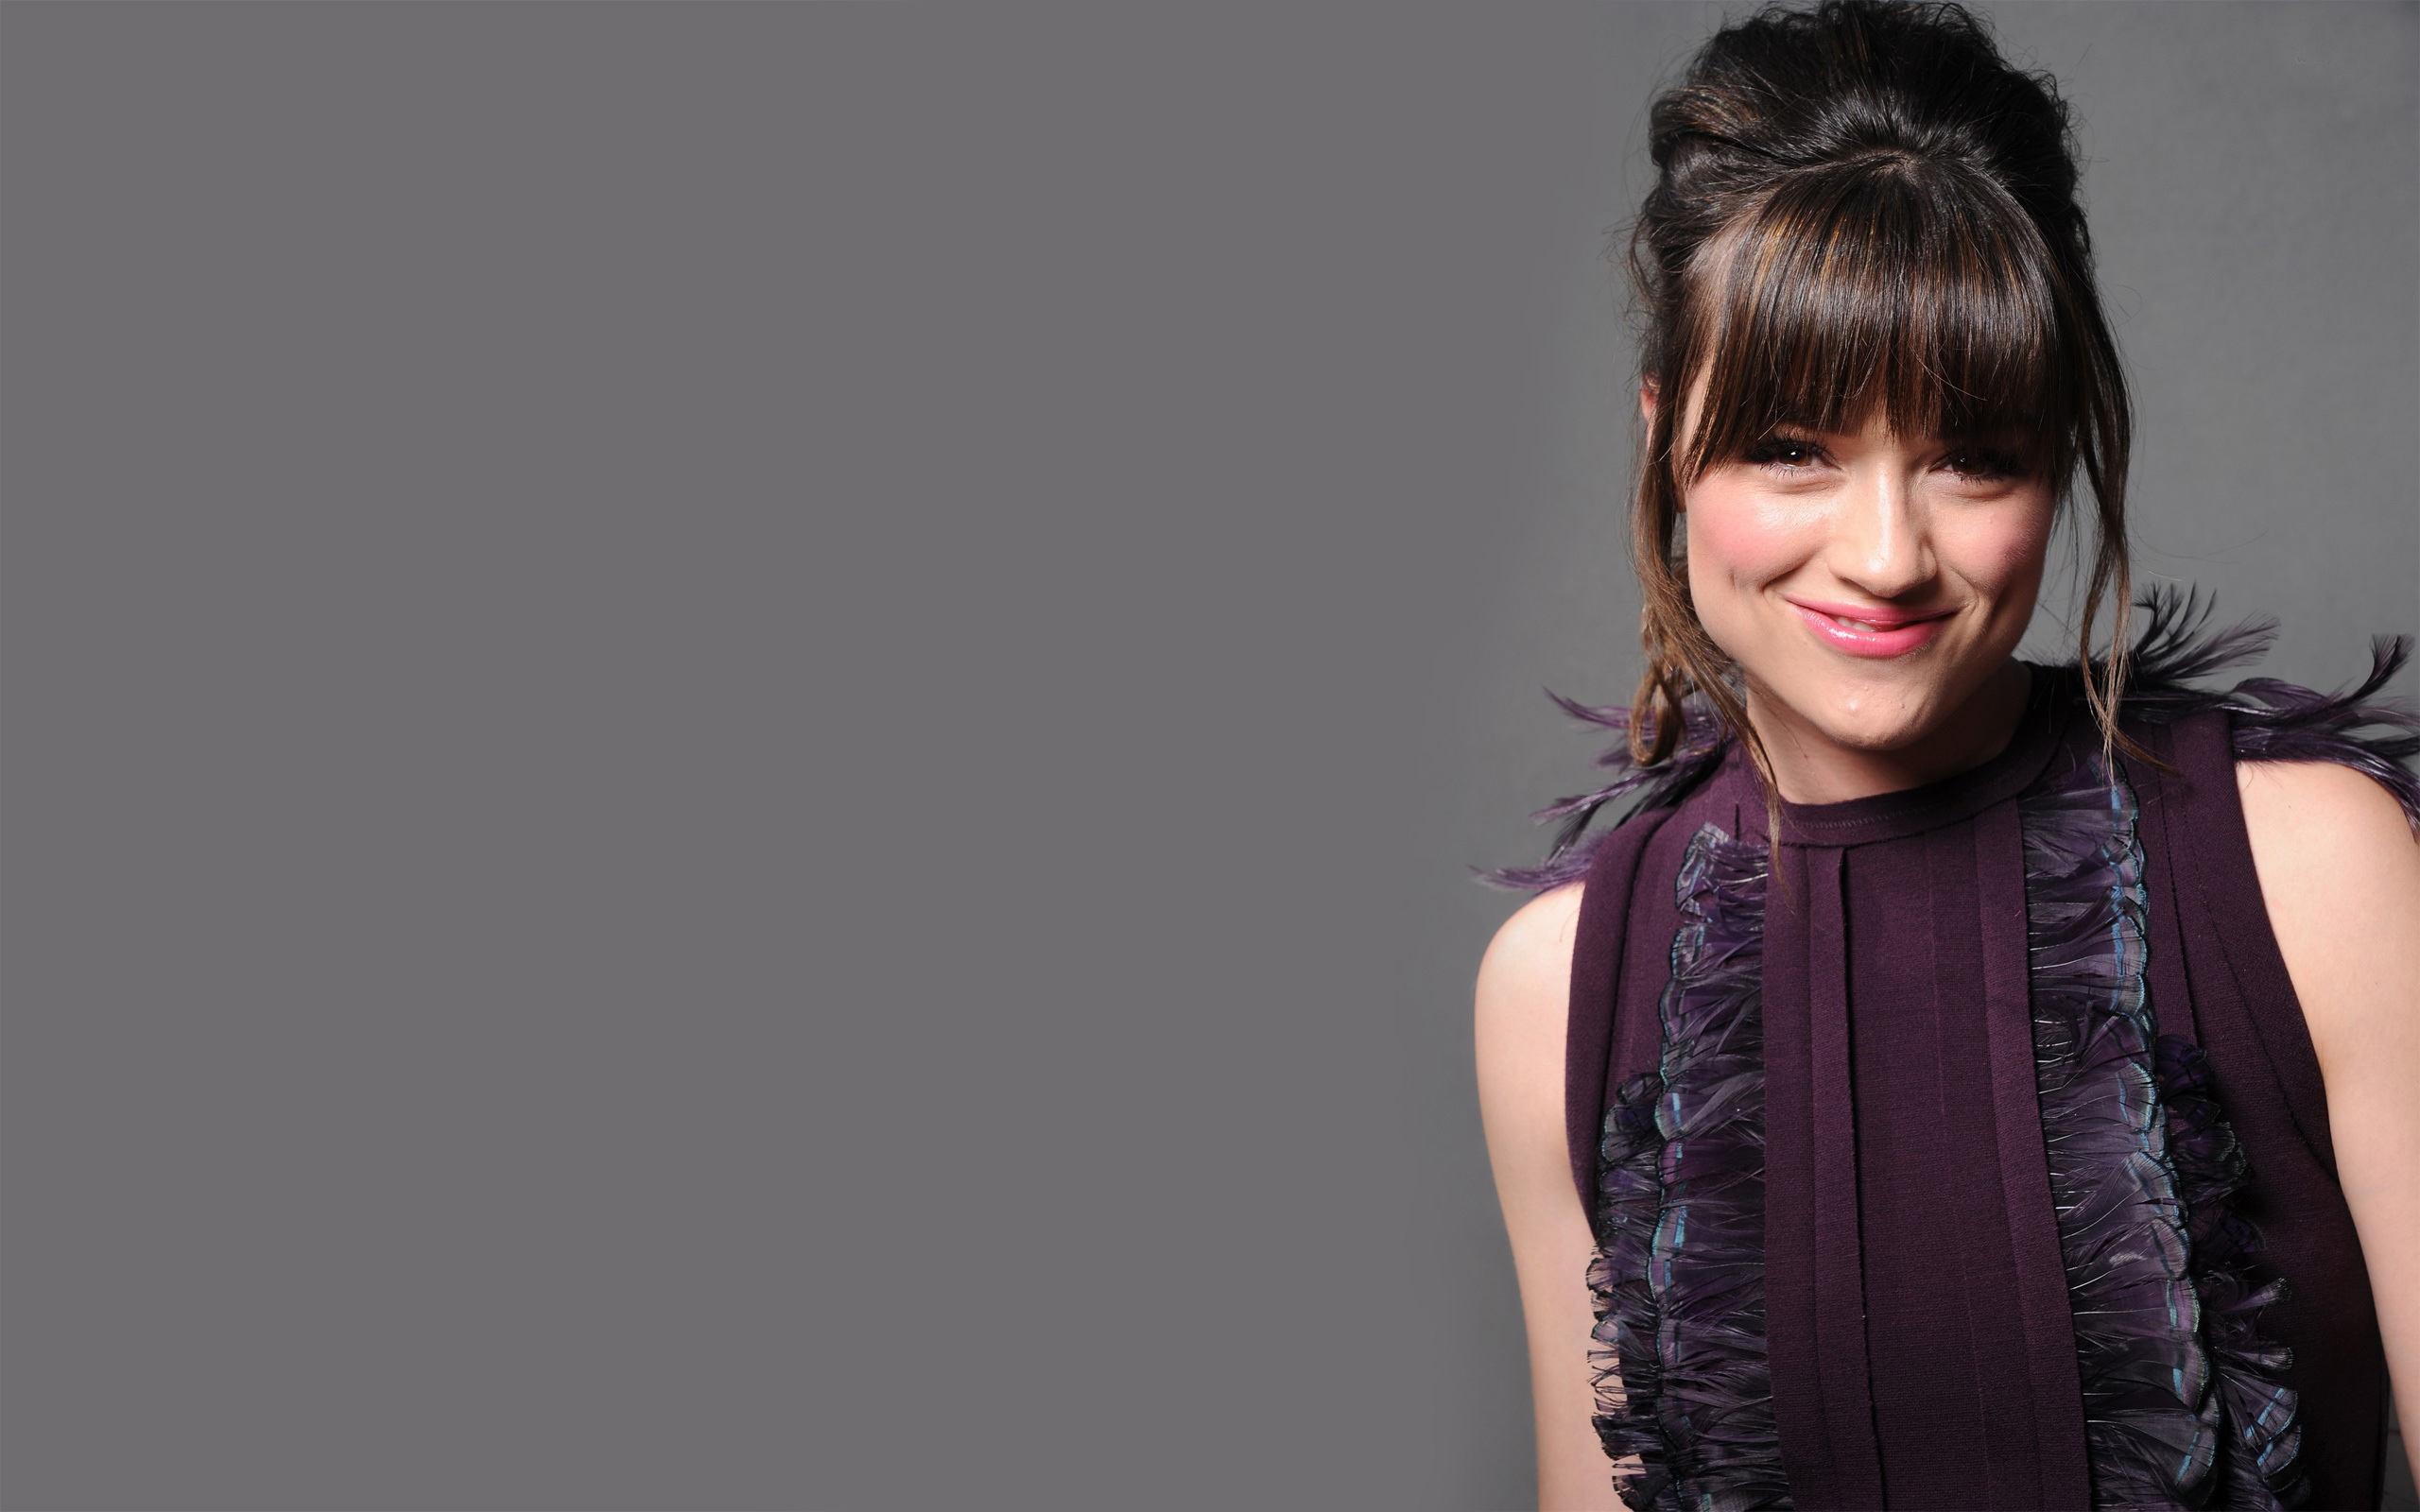 2560x1600 - Crystal Reed Wallpapers 5